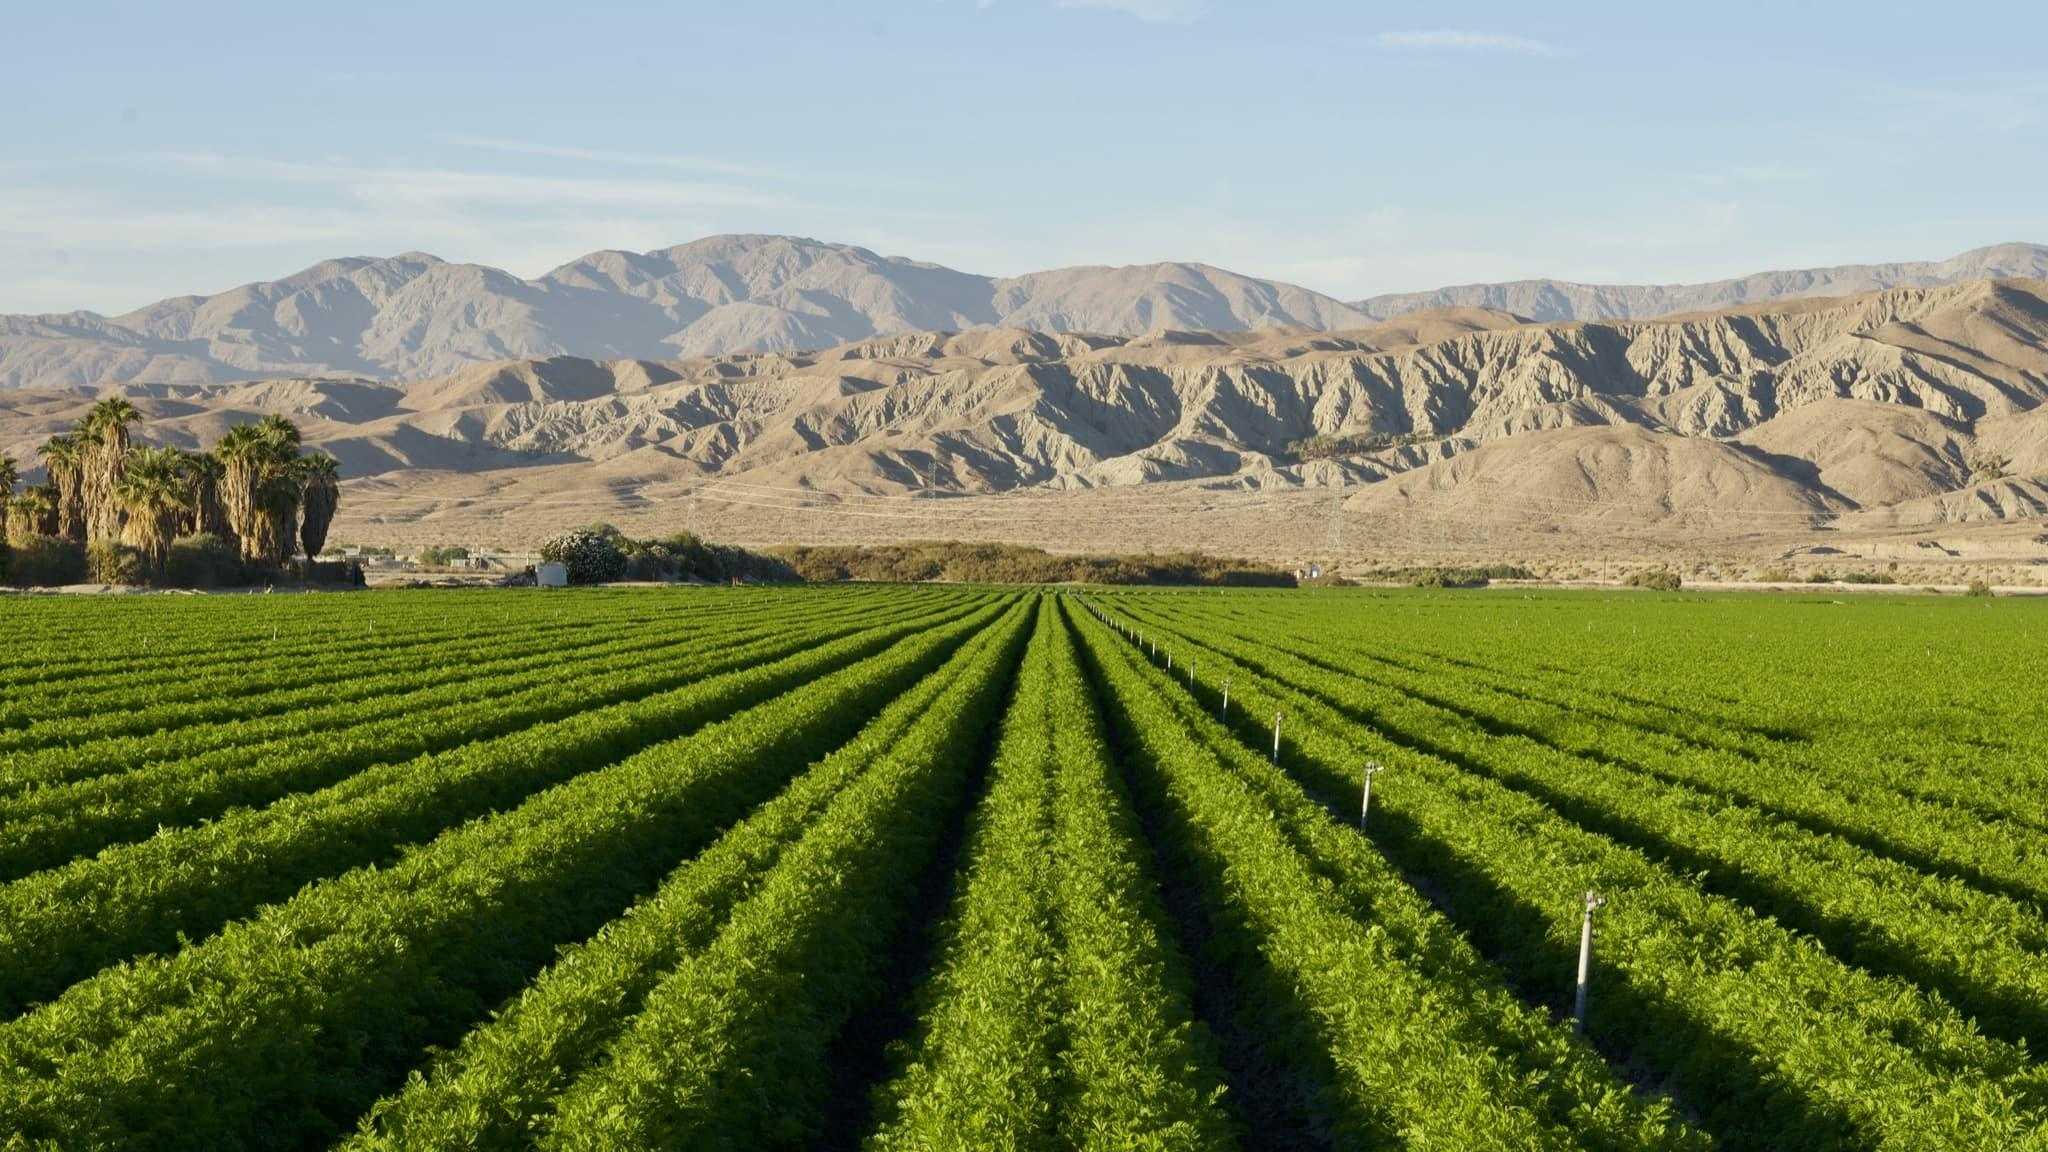 Rows of crops grown in imperial valley